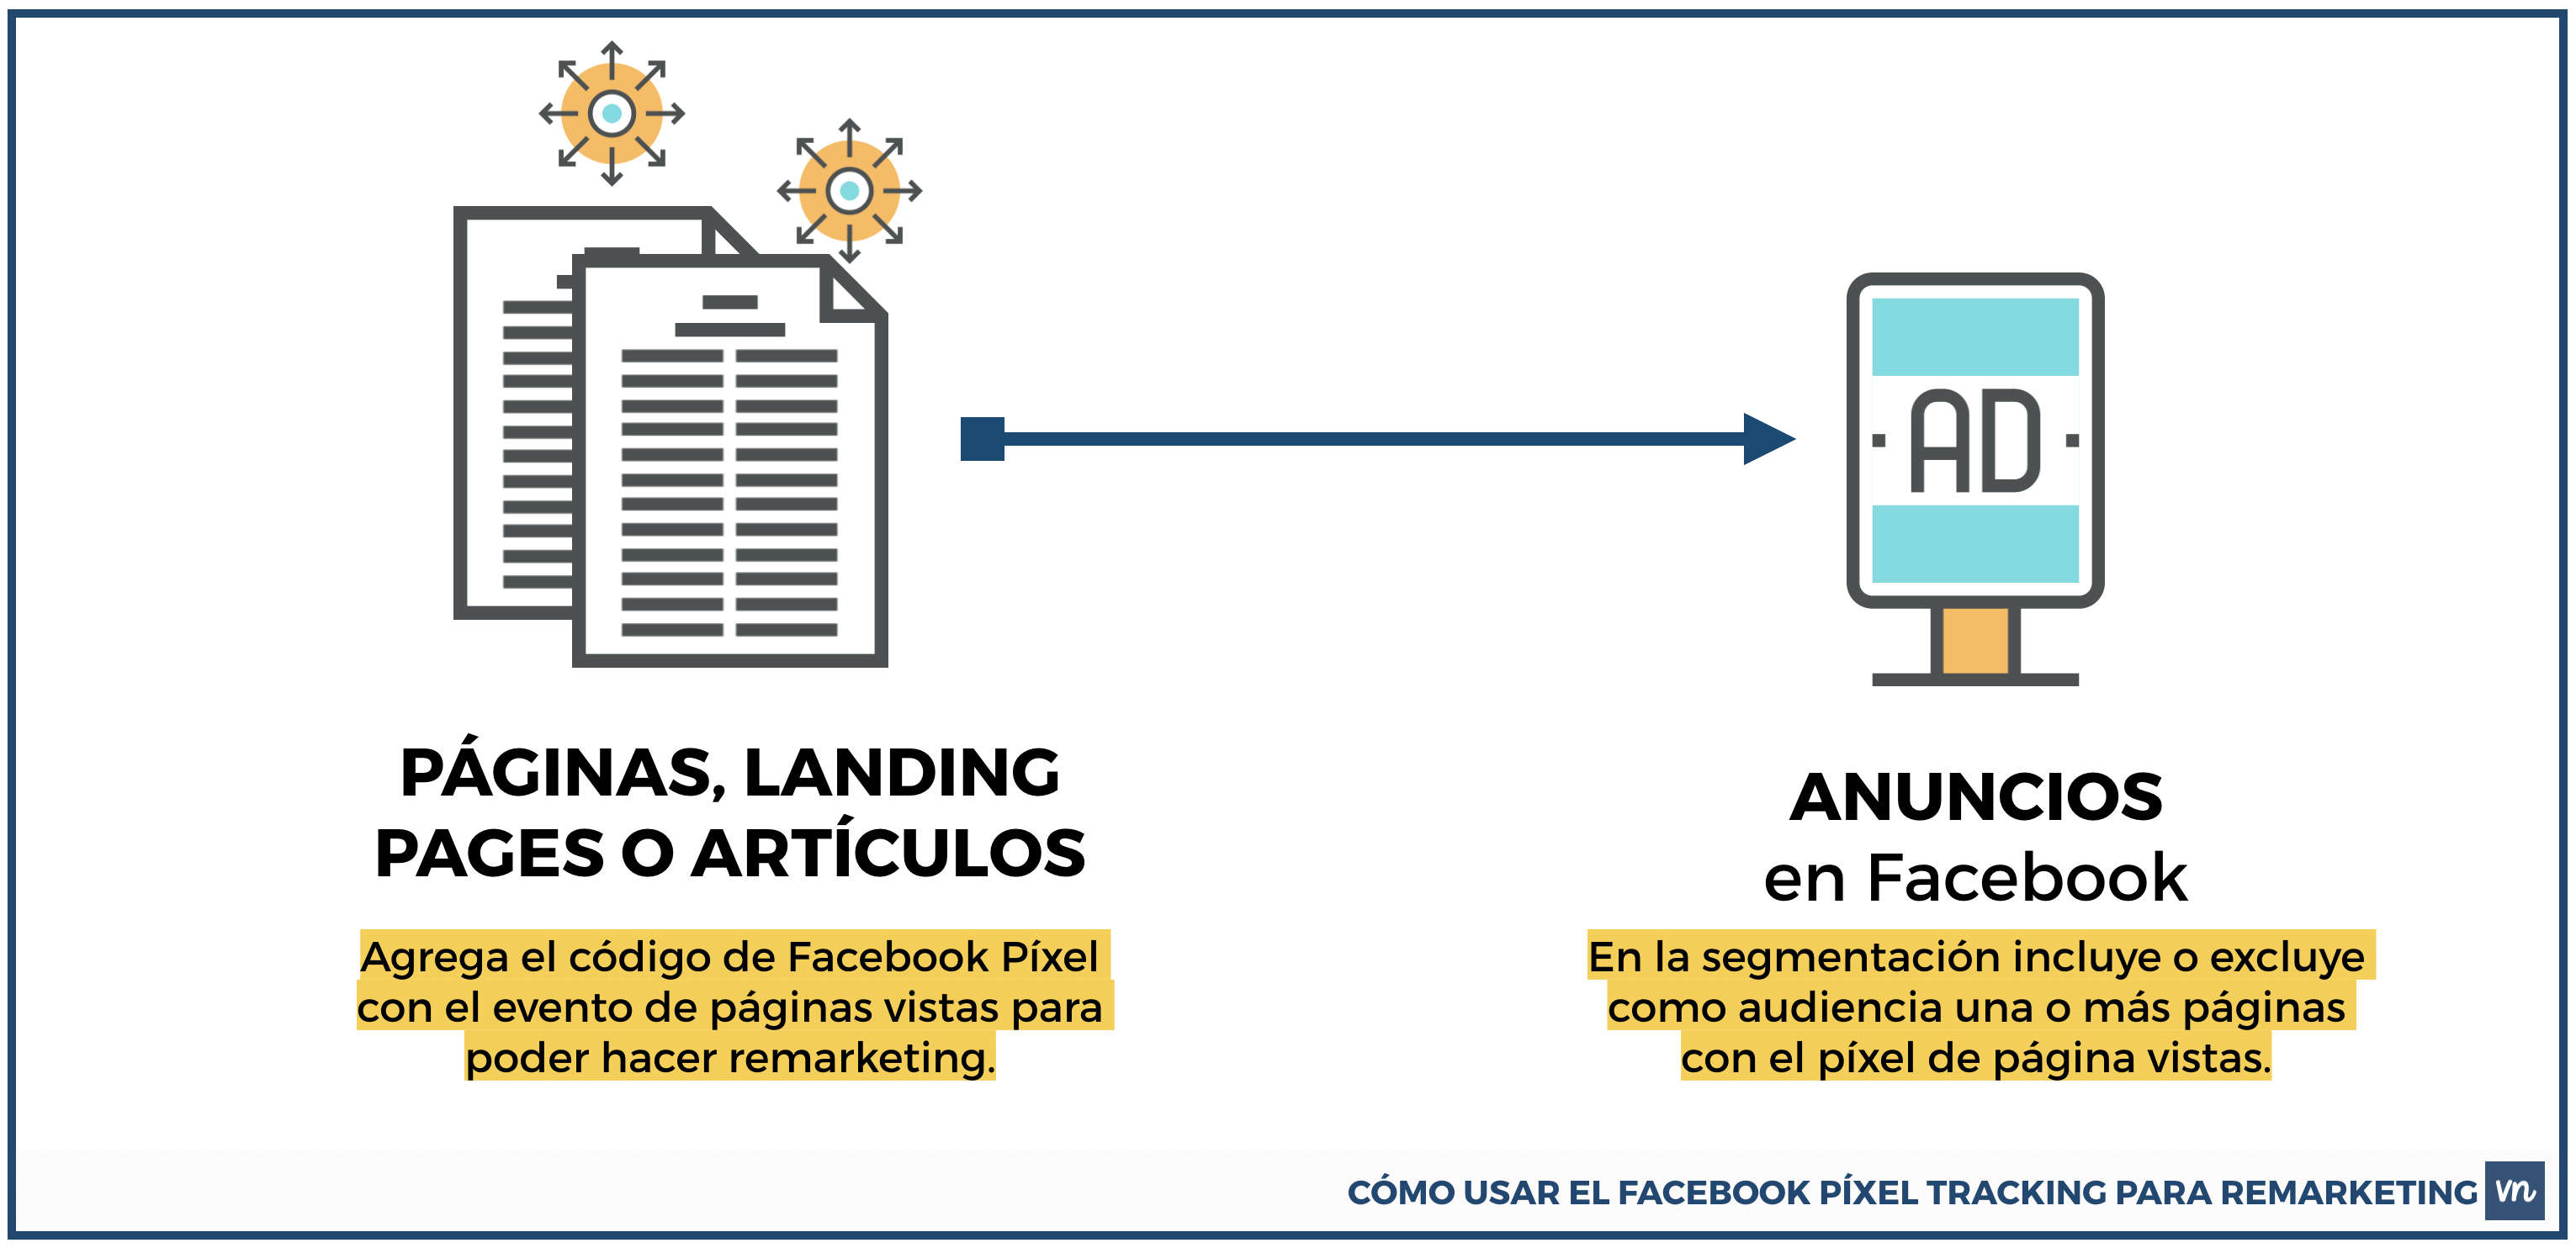 como usar el facebook pixel de facebook para remarketing